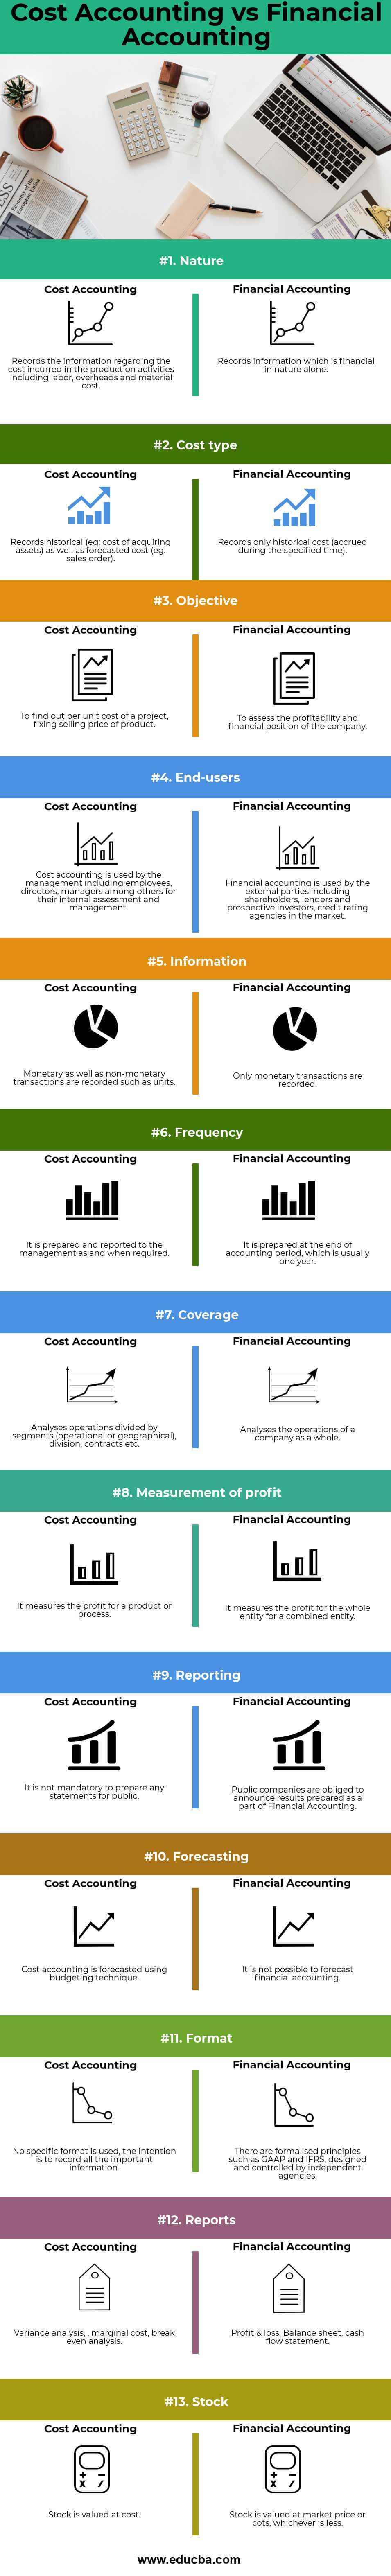 Cost Accounting vs Financial Accounting Infogrphics